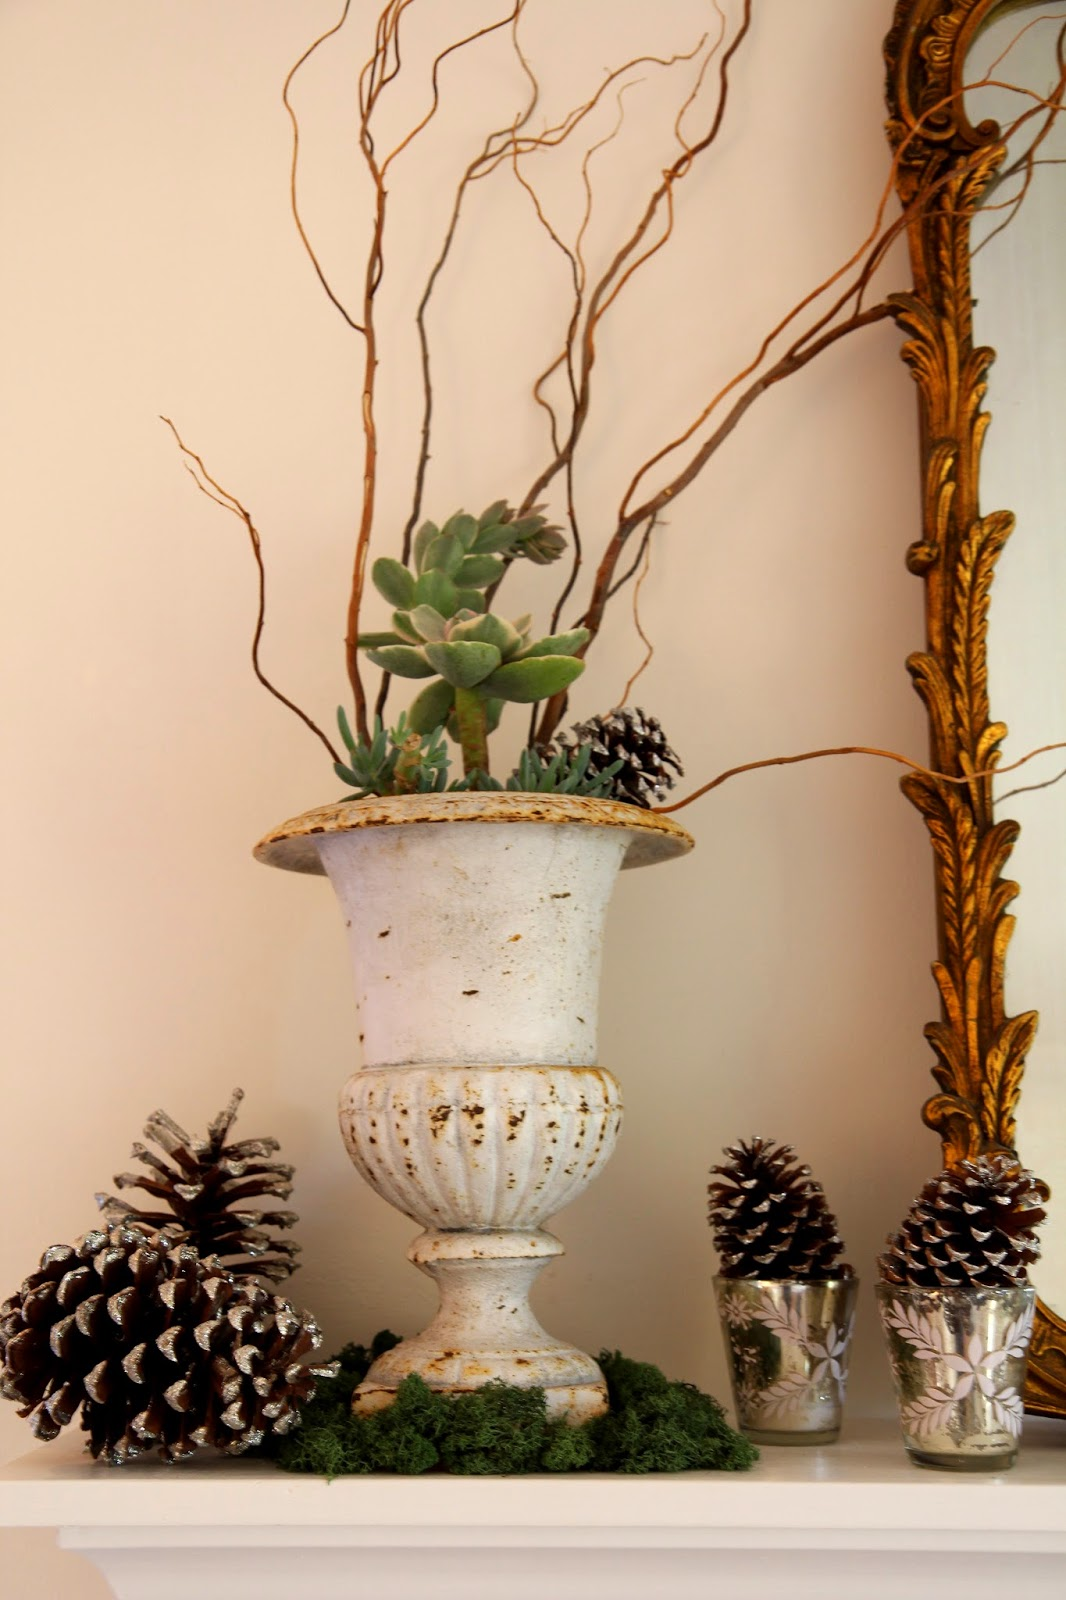 Nora S Nest Pinecones For The Holidays